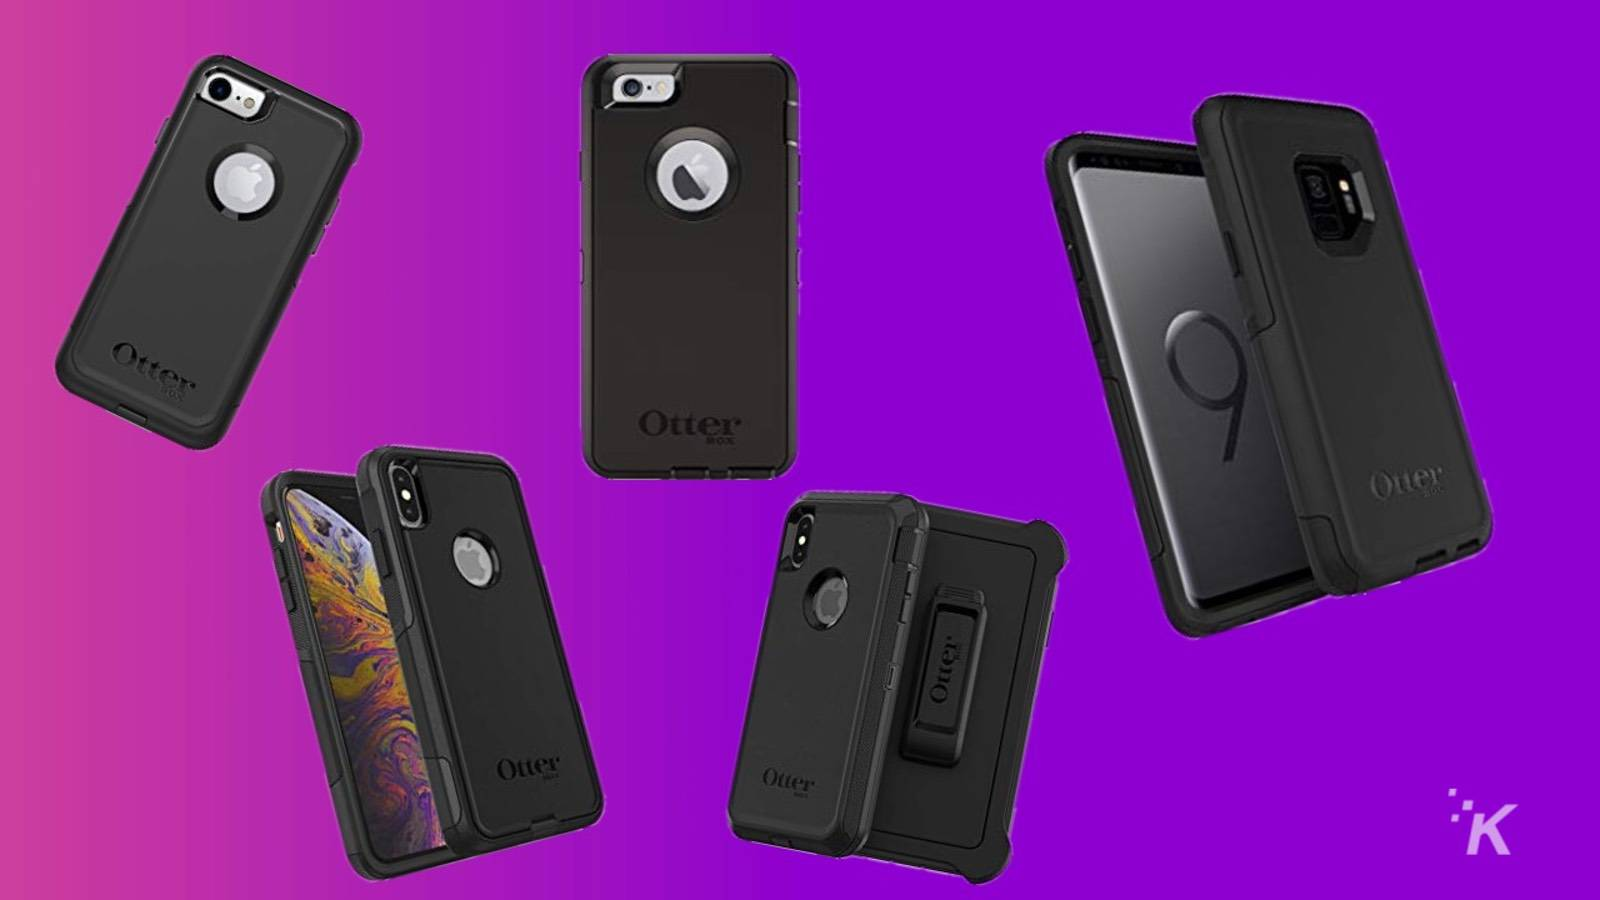 otterbox case deal amazon